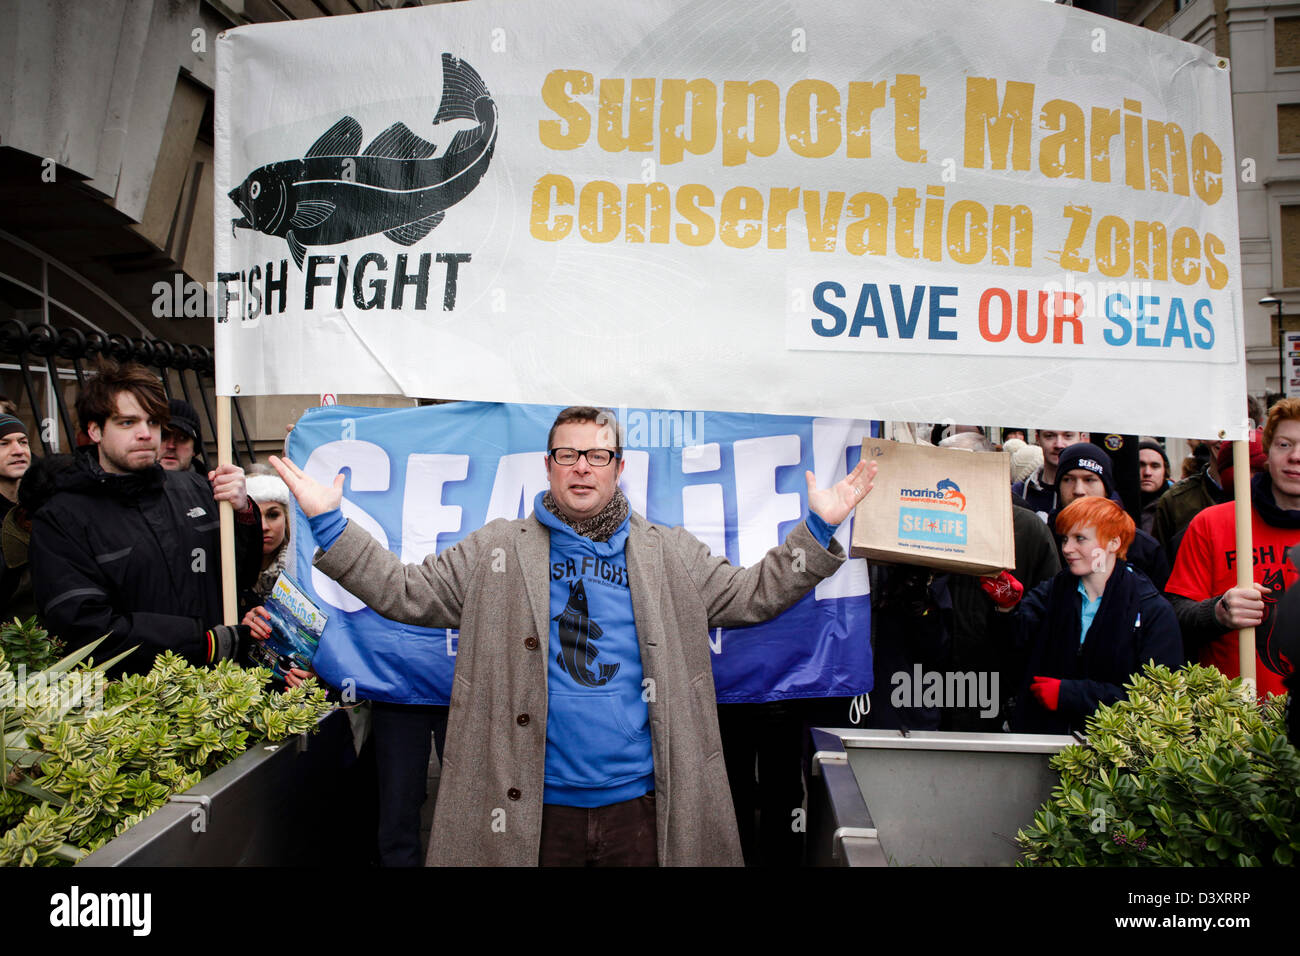 Hugh Fearnley-Whittingstall during the Marine Conservation Society march to highlight the need for Marine Conservation - Stock Image